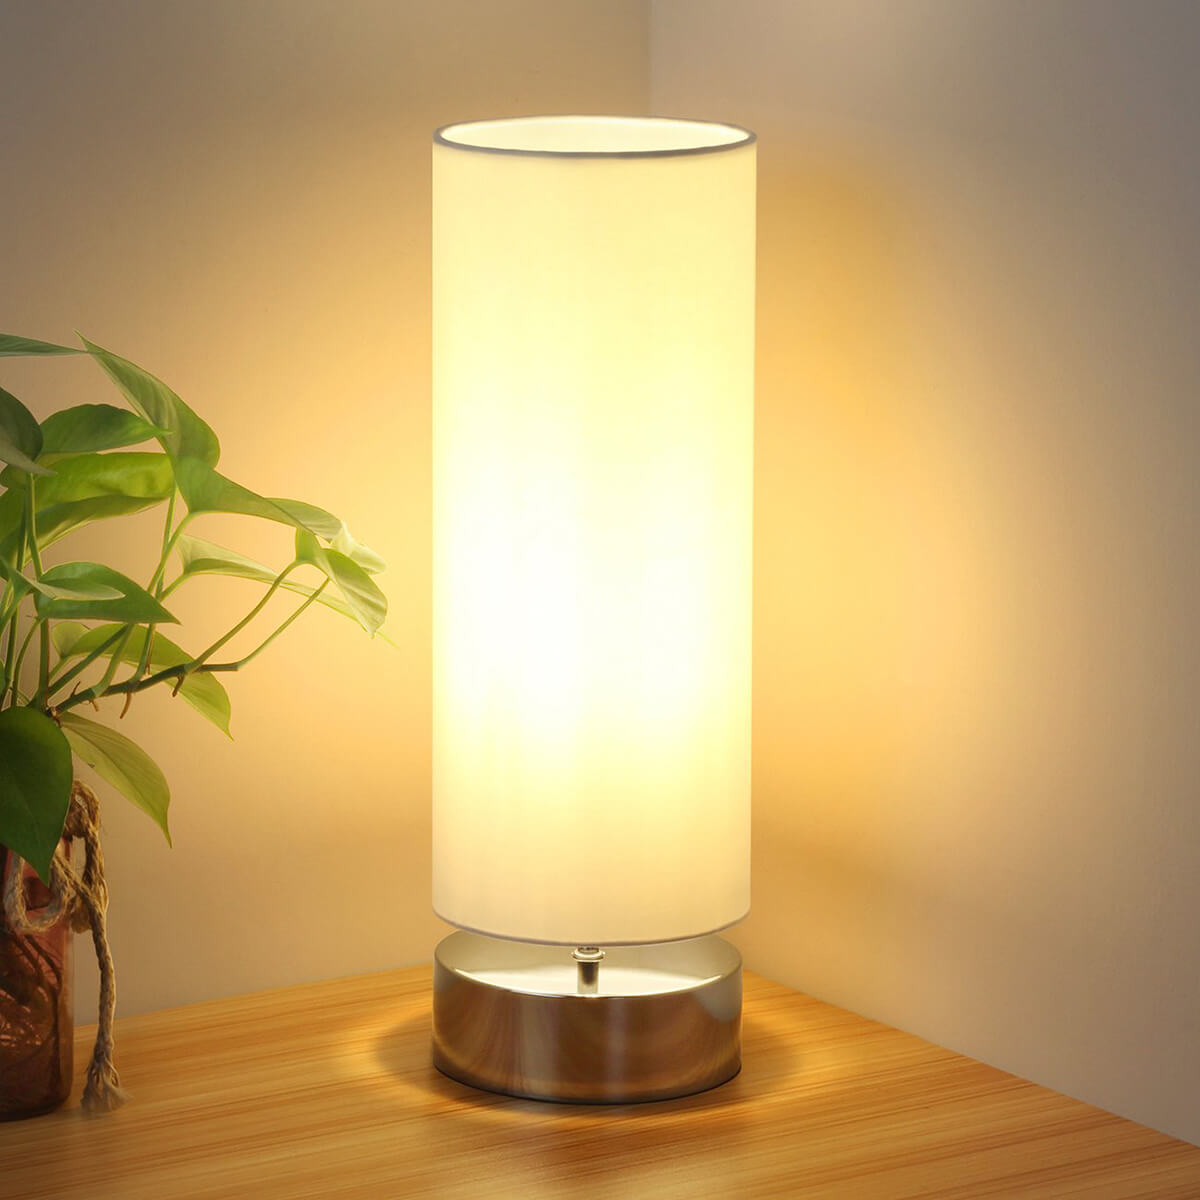 Minimalist Touch Control Bedside Lamp